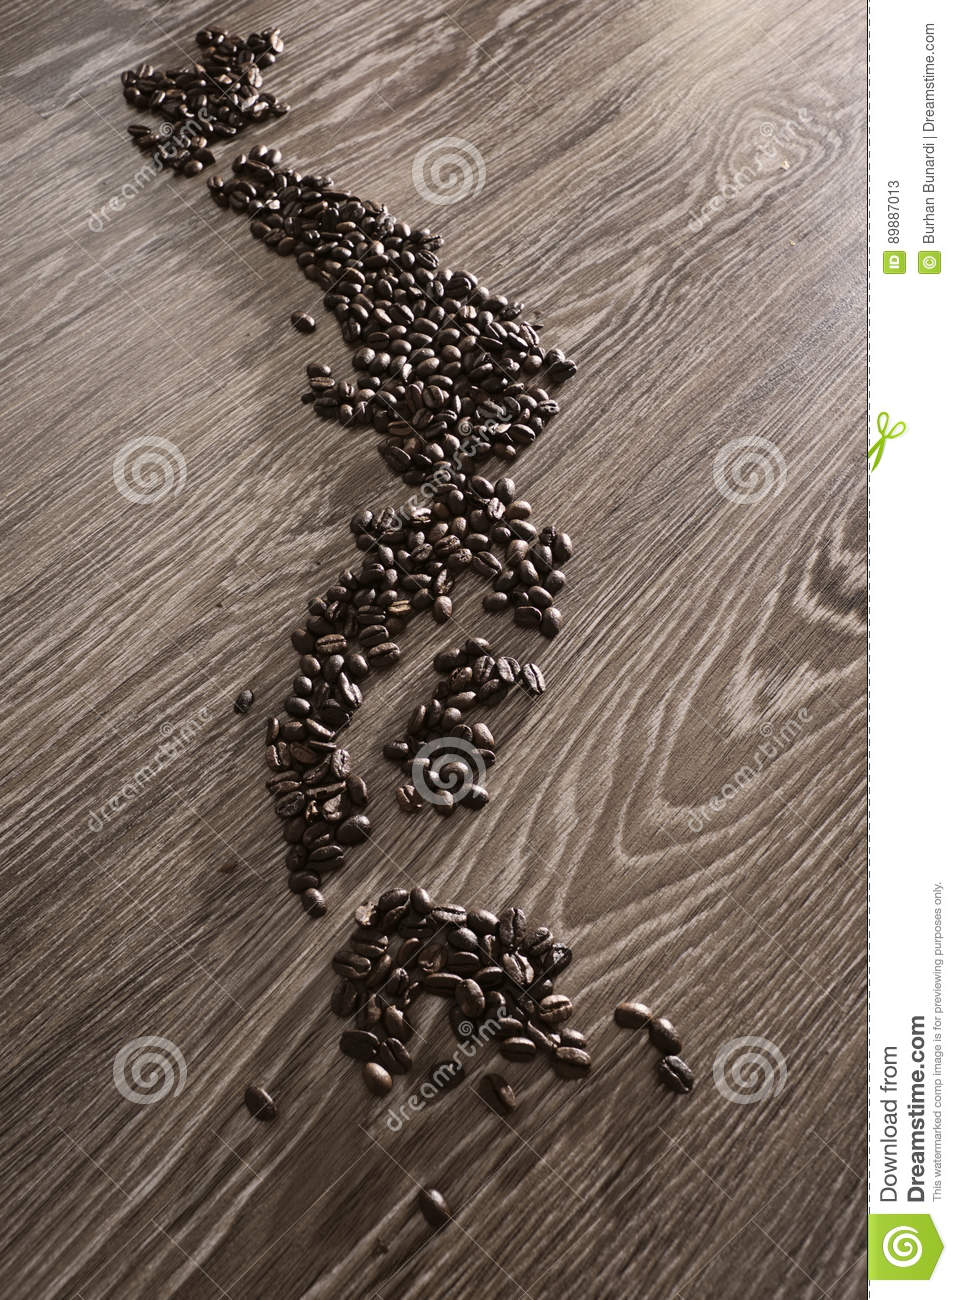 Japan map with coffee beans